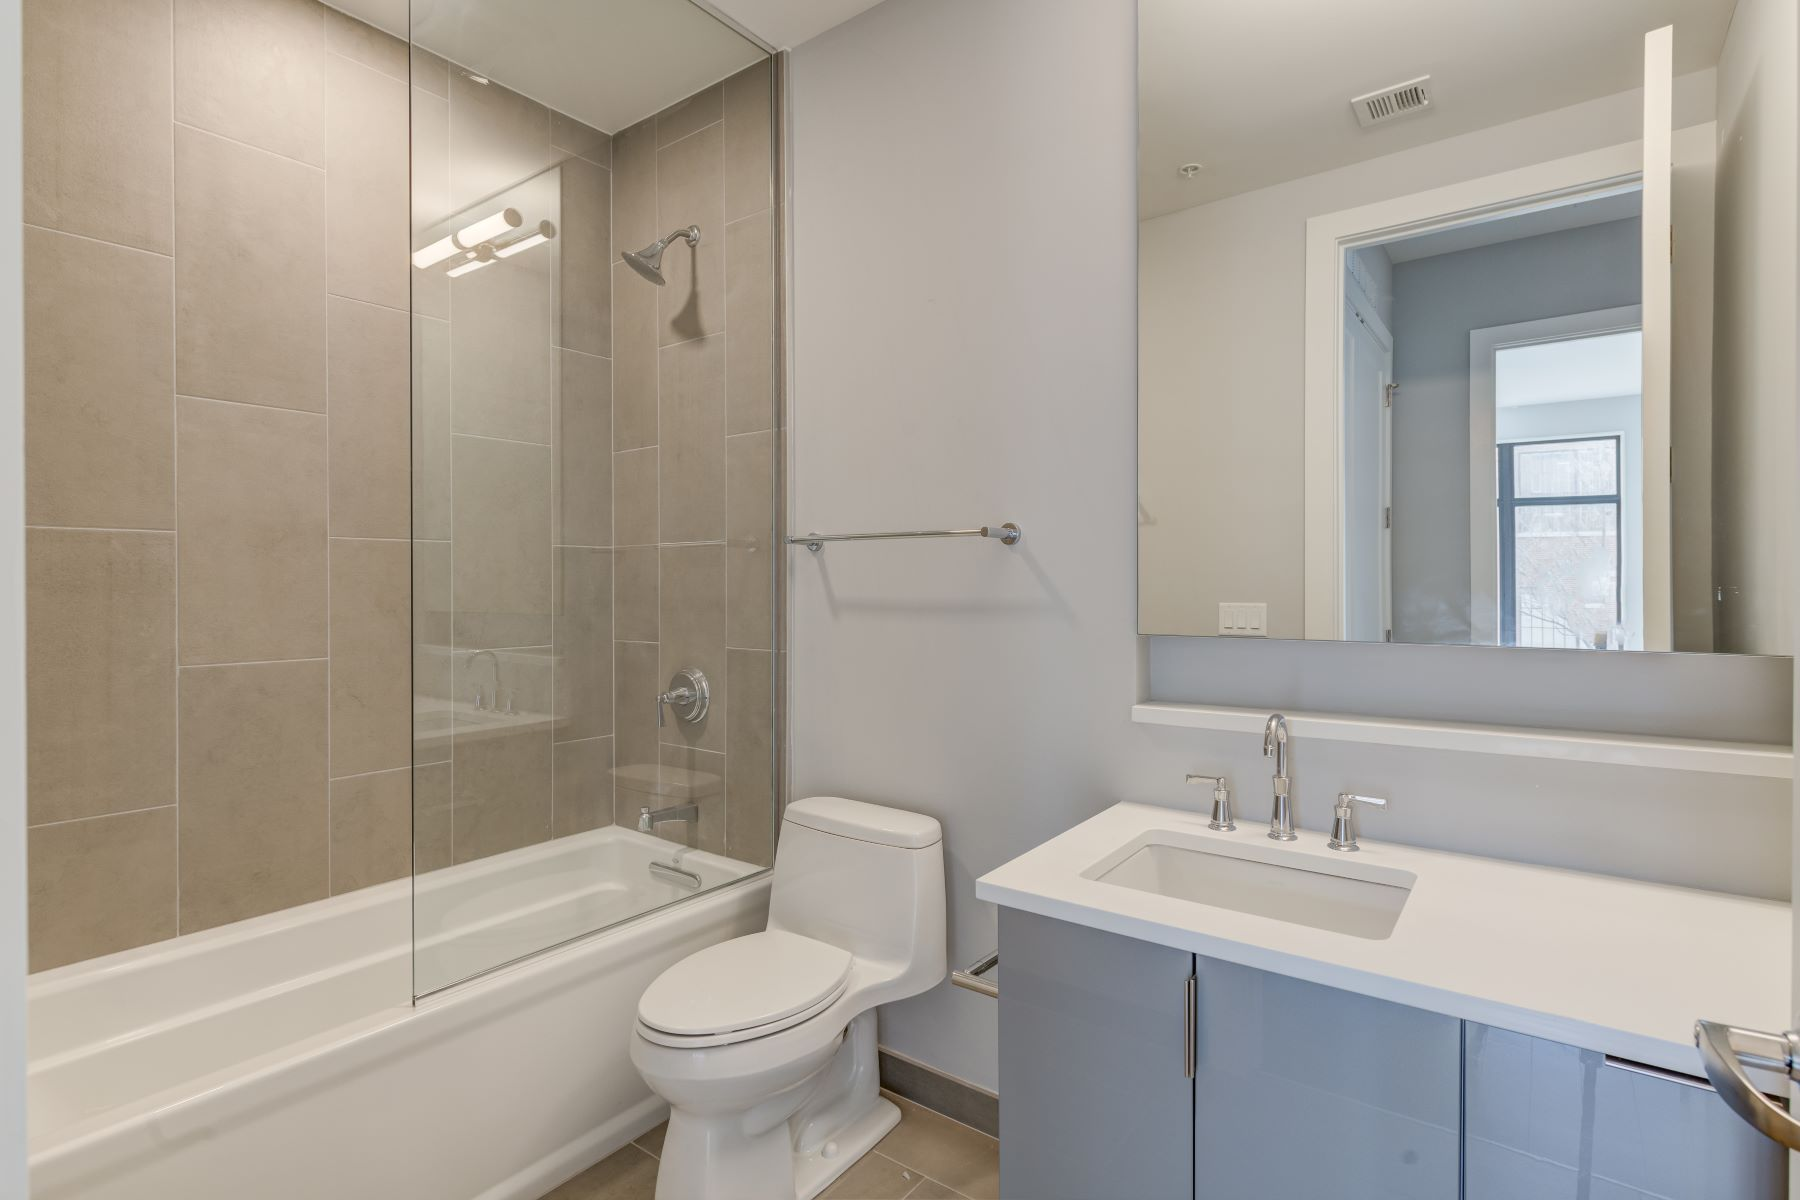 Additional photo for property listing at 4101 Laclede 4101 Laclede Ave # 312 St. Louis, Missouri 63108 United States